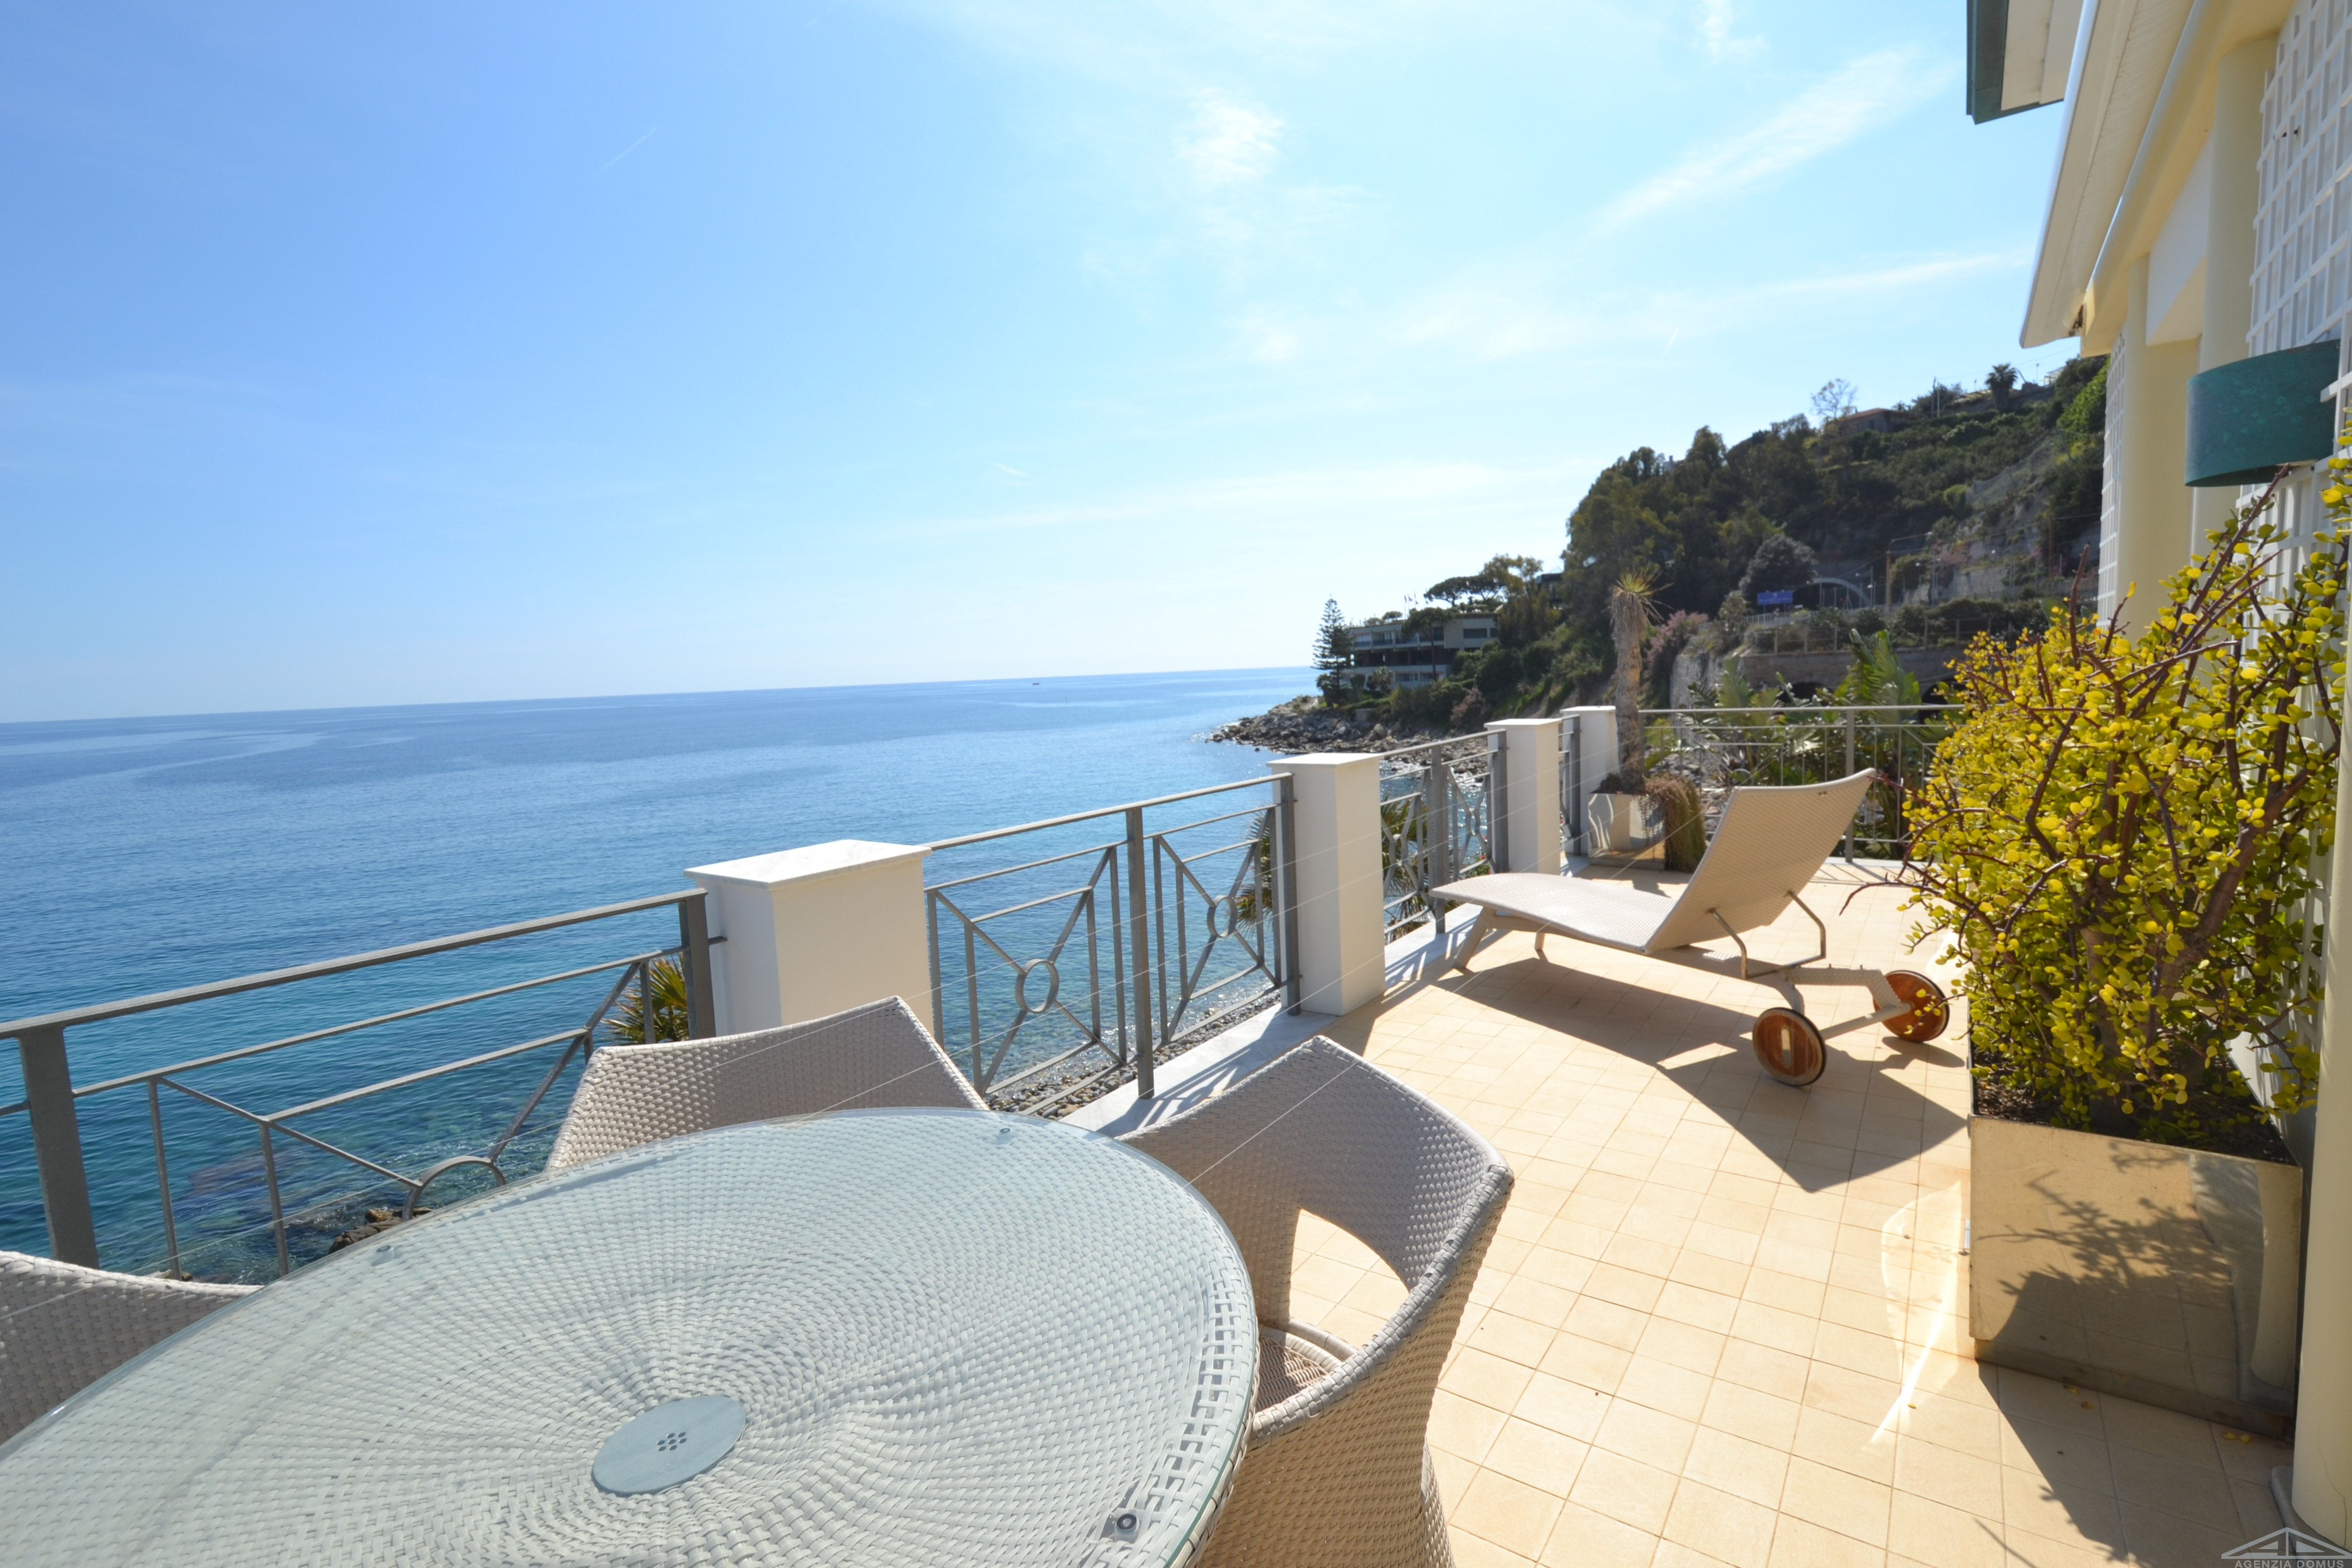 AG-DOM 686 – Apartment with direct access to the beach in